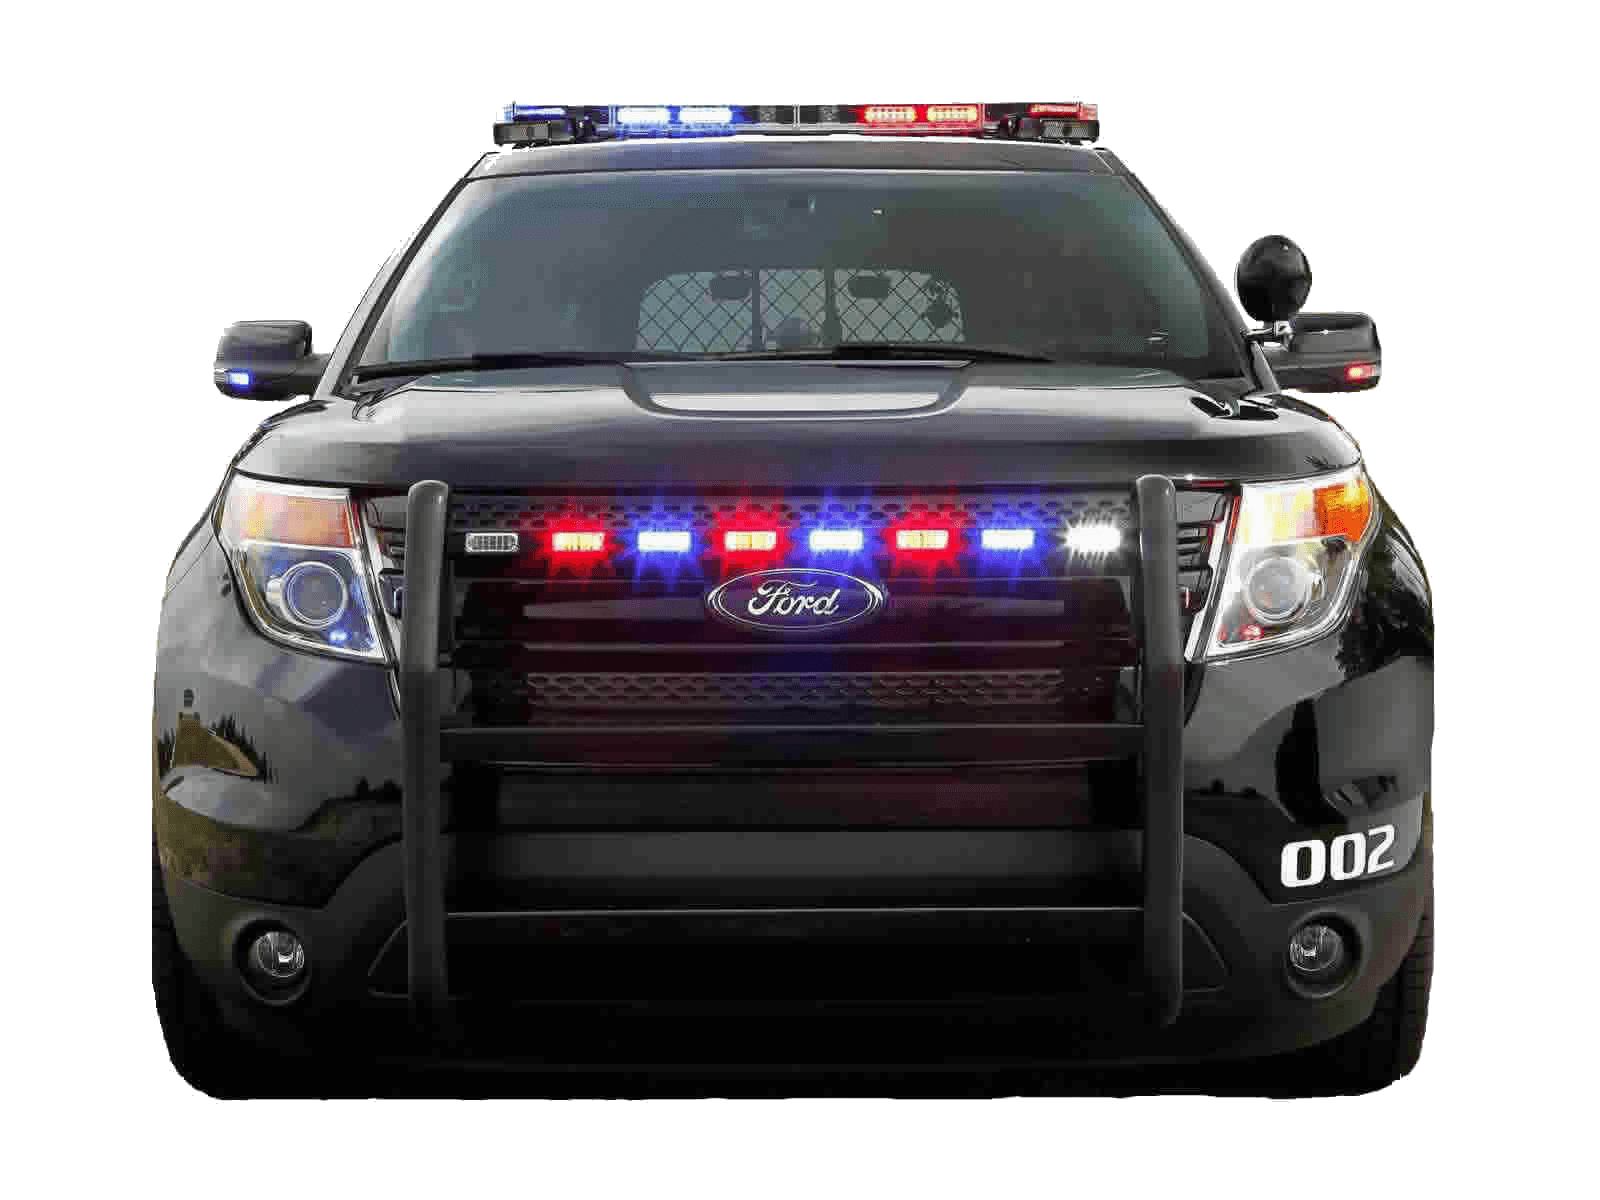 Download - Police Car HD PNG - Police HD PNG